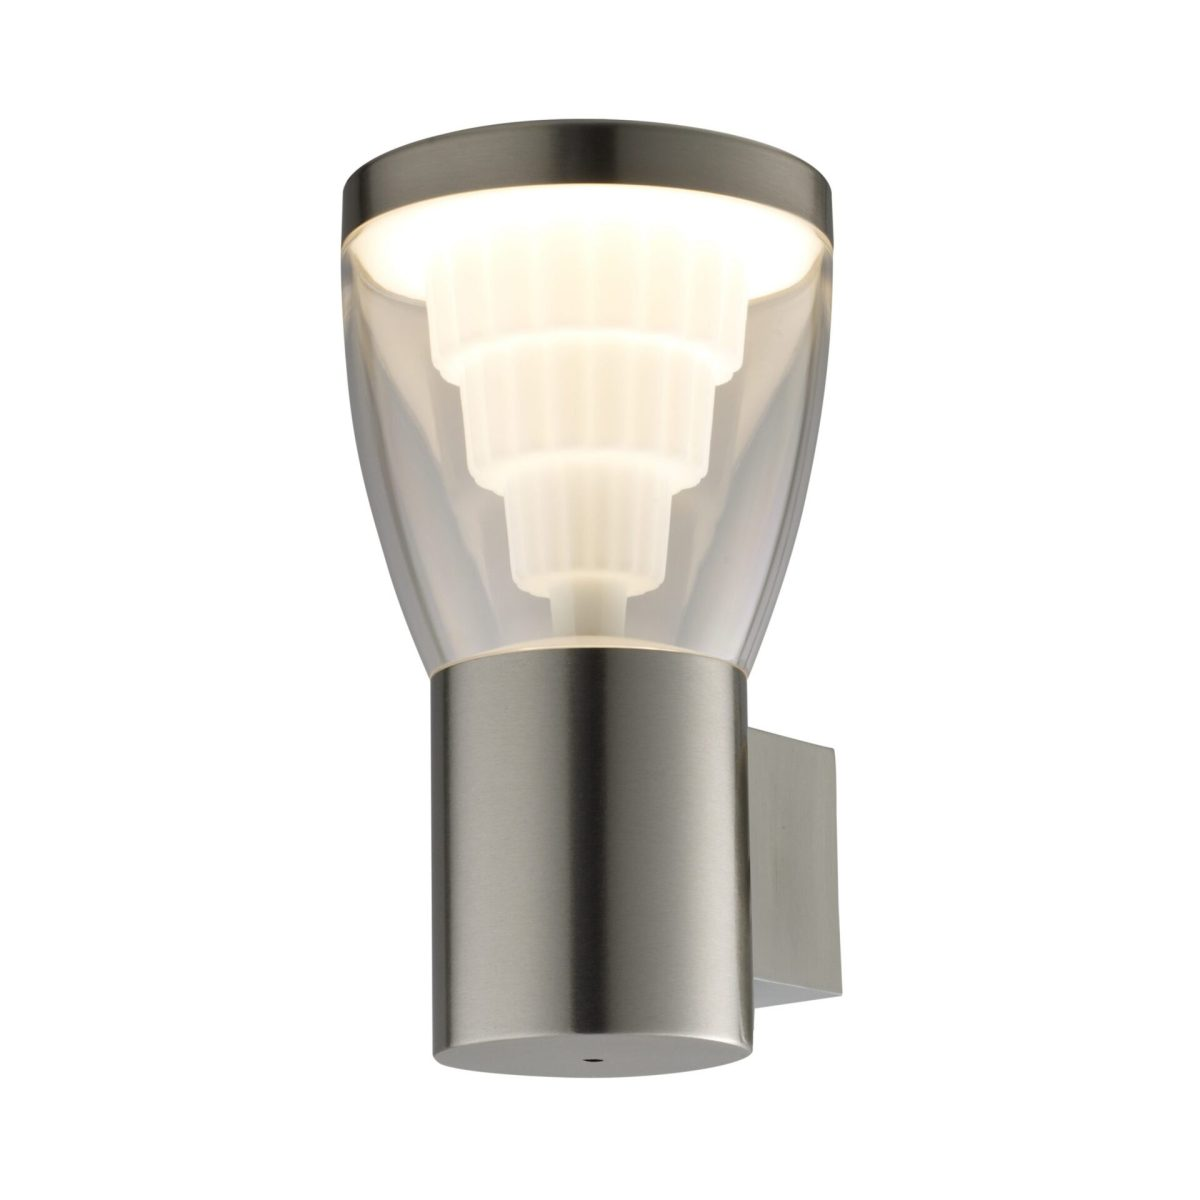 Outdoor Lighting Bulkheads WL-L25 – COMING SOON